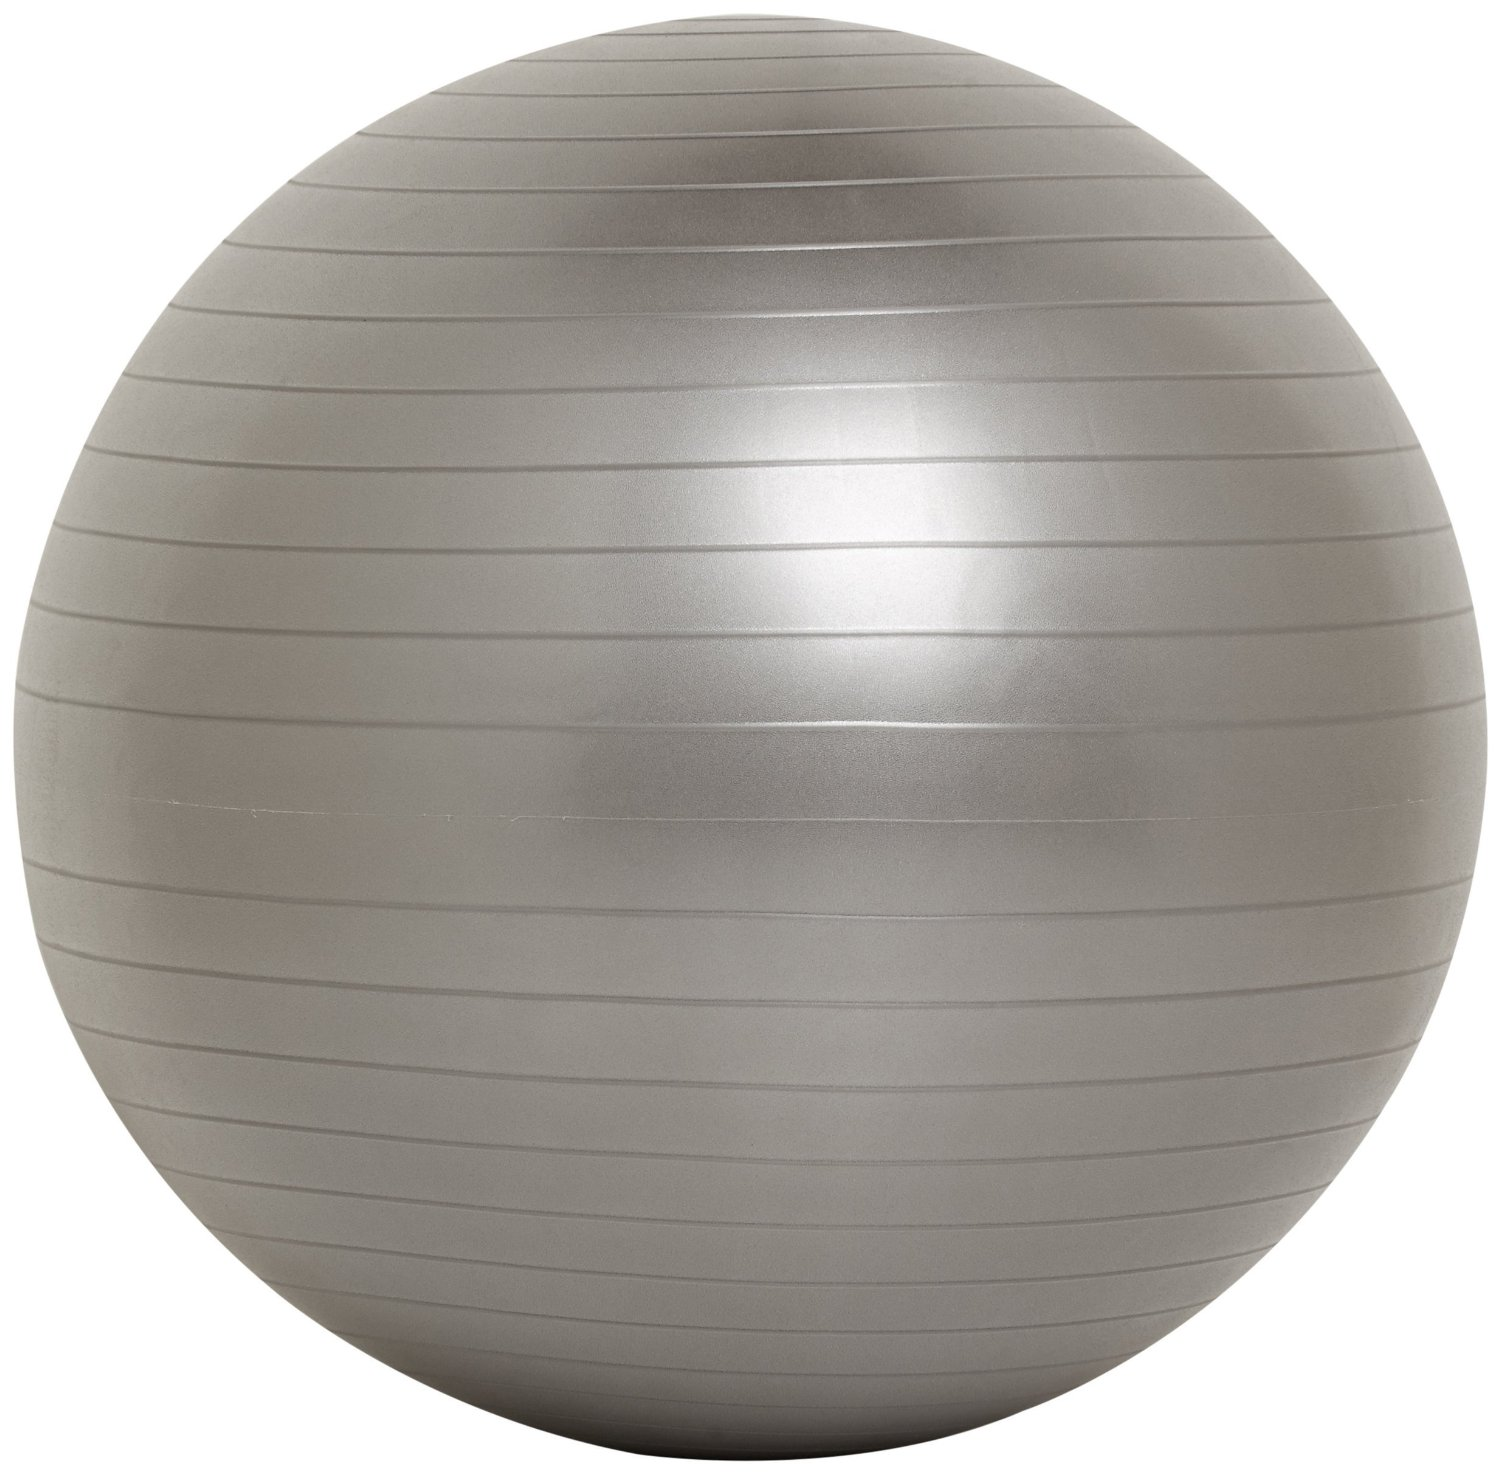 exercise-ball.jpeg